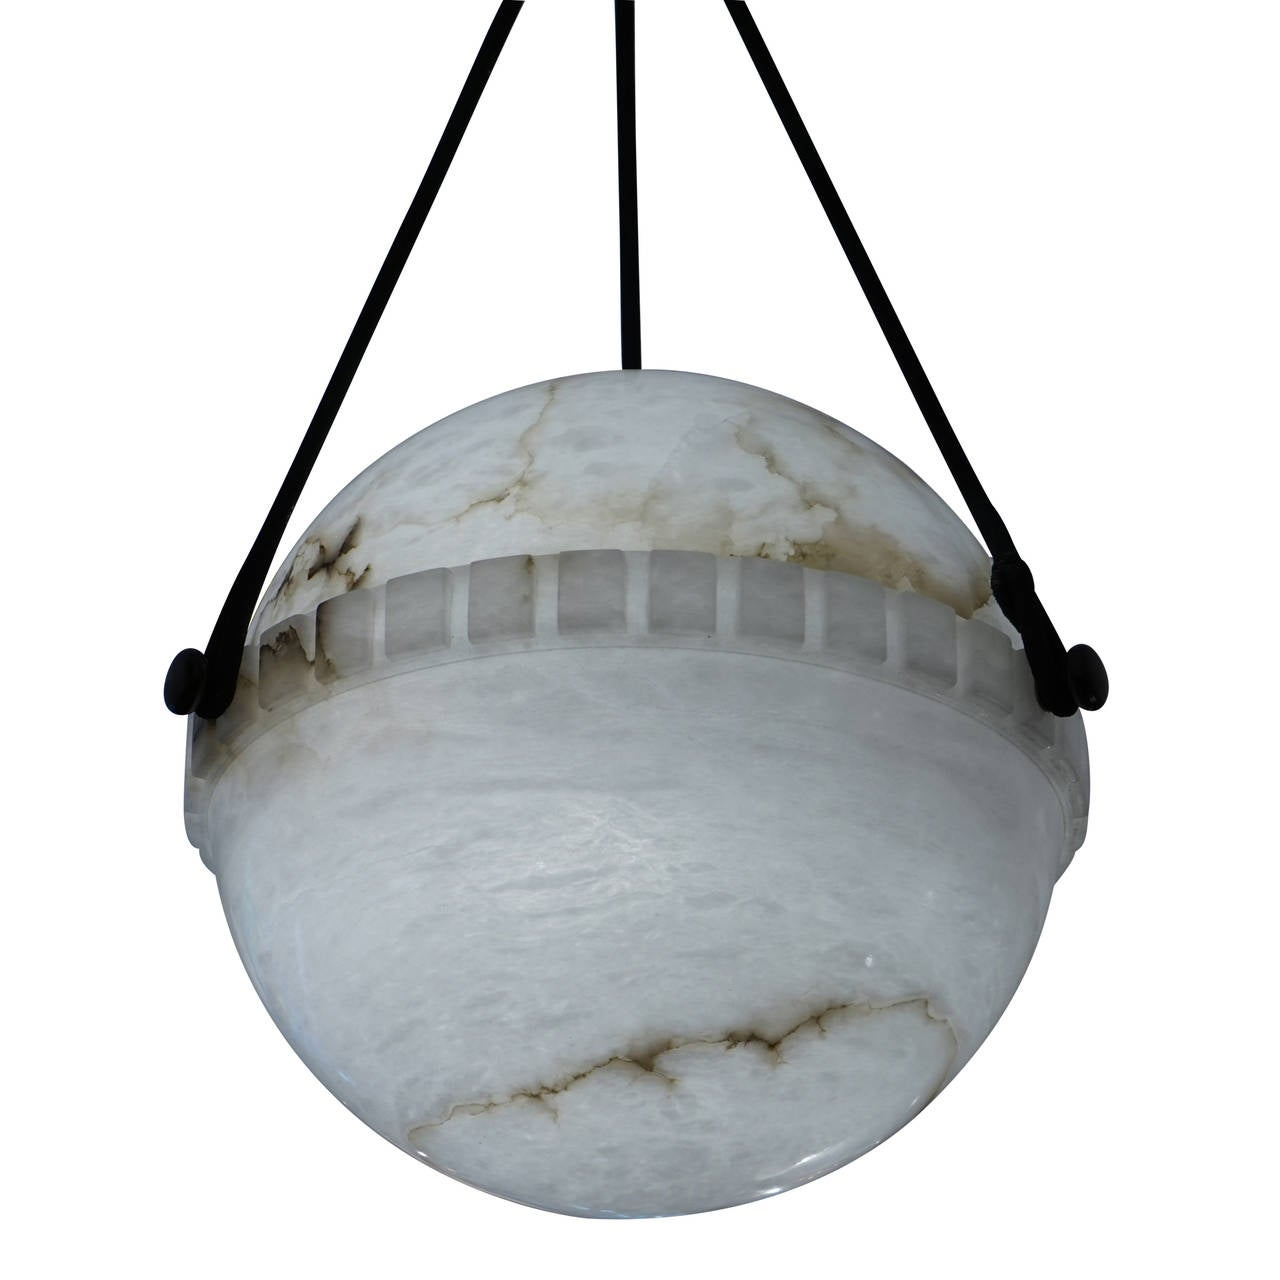 Alabaster globe light at 1stdibs this exclusive art deco light suspends mid air on electrified ropes and holds one arubaitofo Choice Image